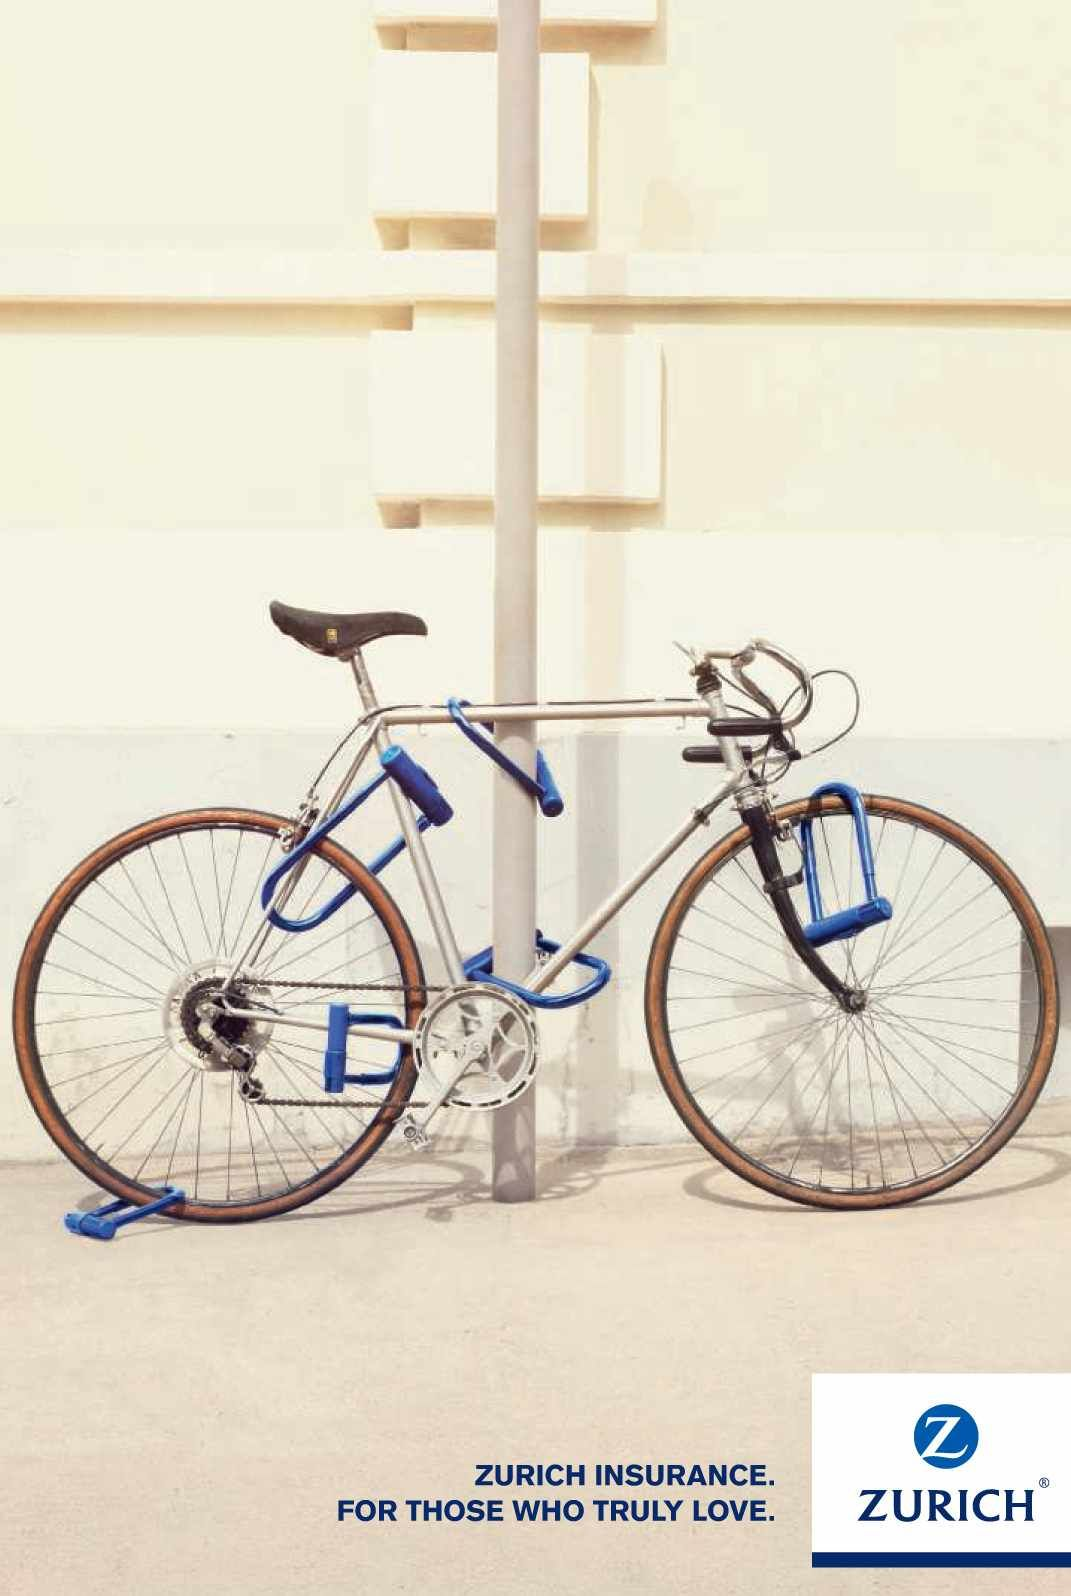 Zurich Insurance Company Bike For those who truly love.